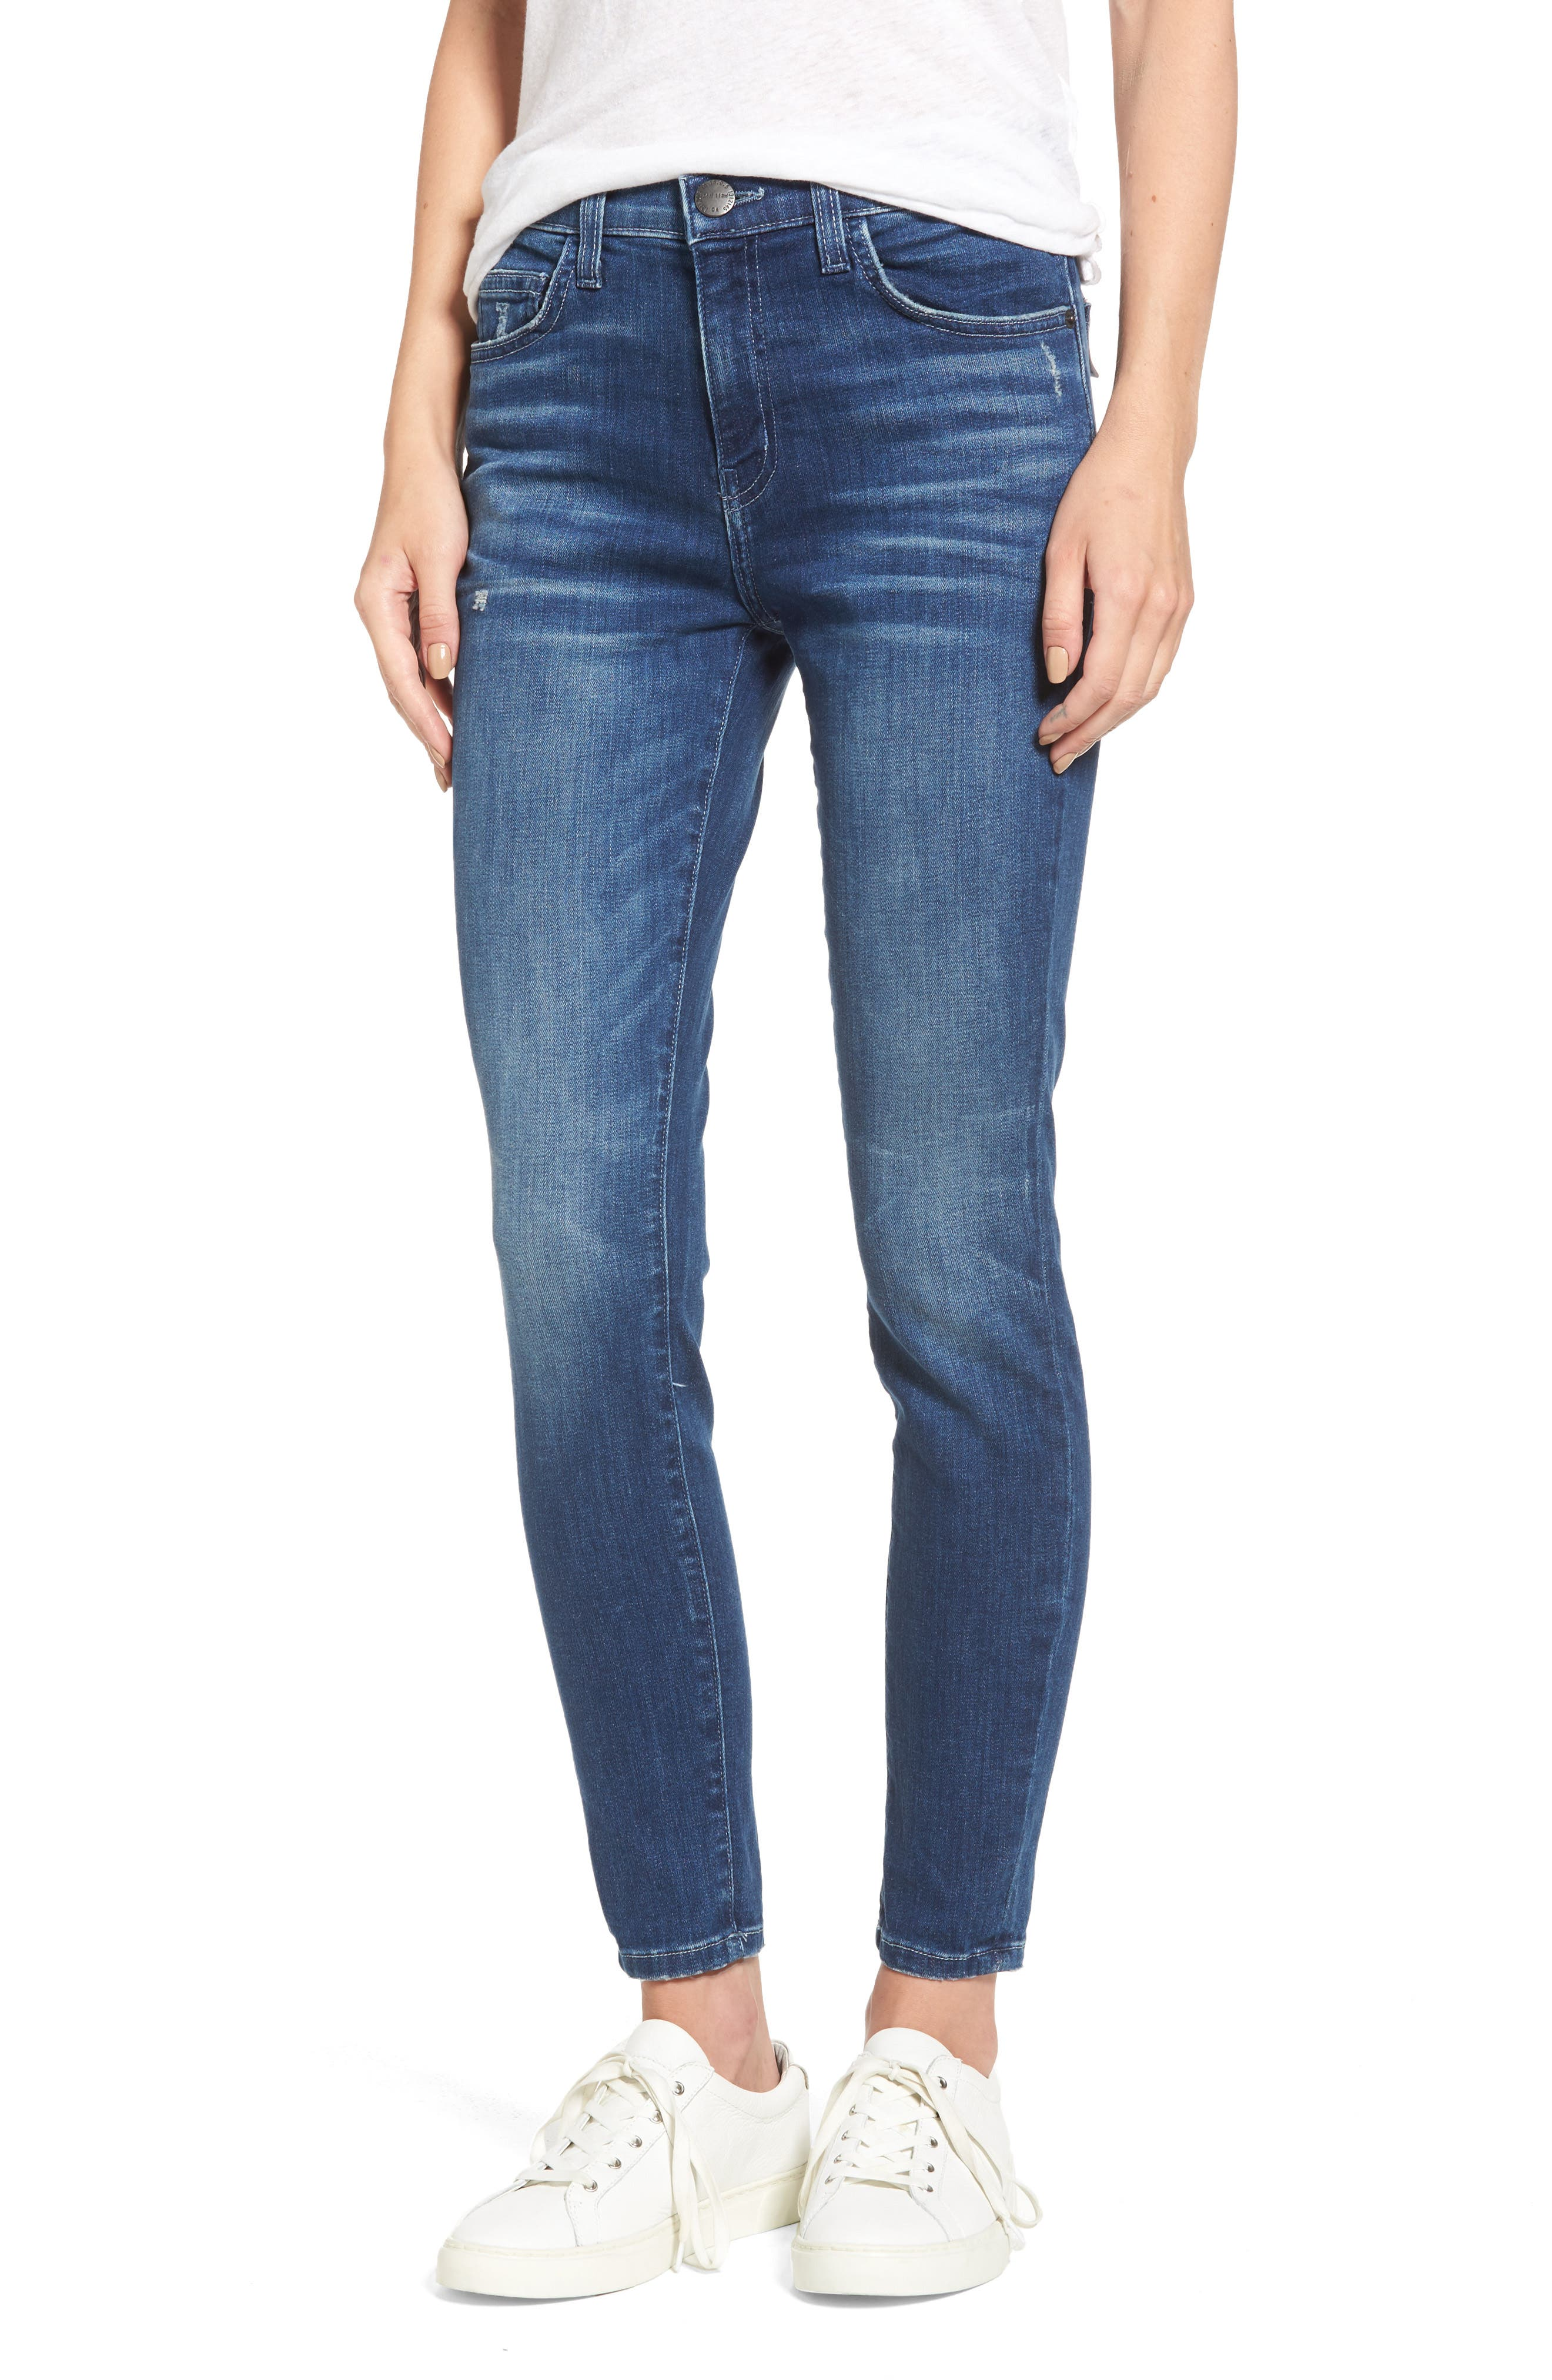 Current/Elliott The Stiletto High Waist Skinny Jeans (Sahara Destroy)